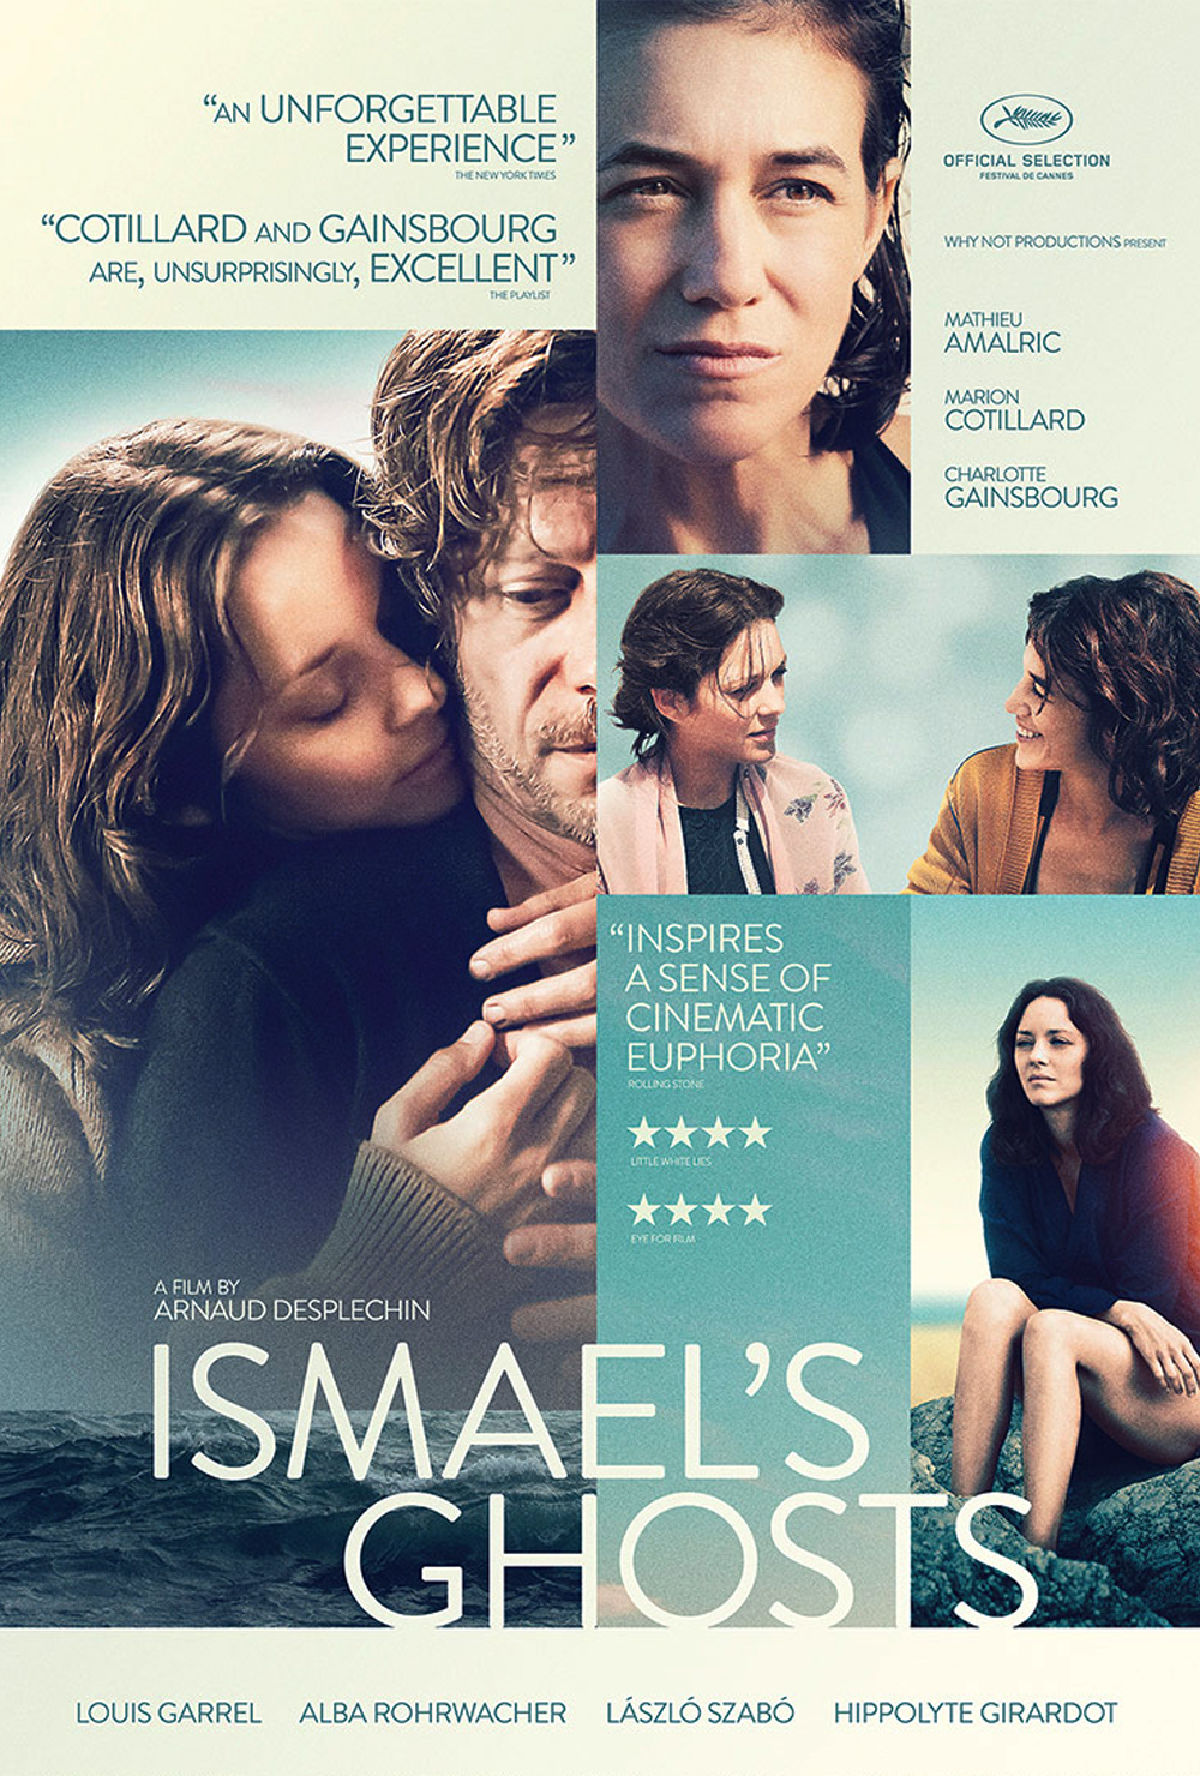 'Ismael's Ghosts' movie poster